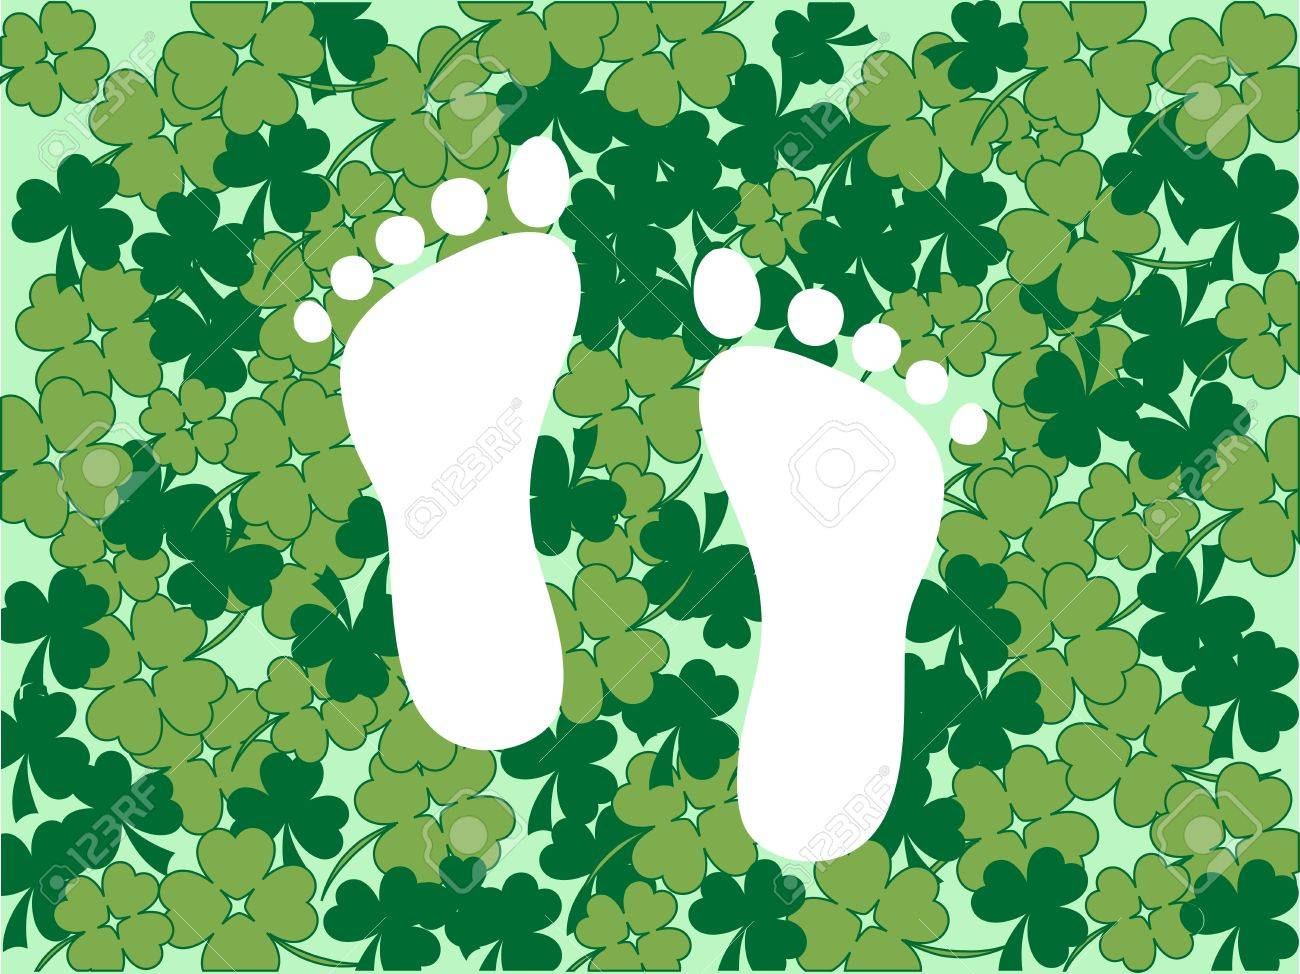 White foot prints in green clover background Stock Vector - 12486551